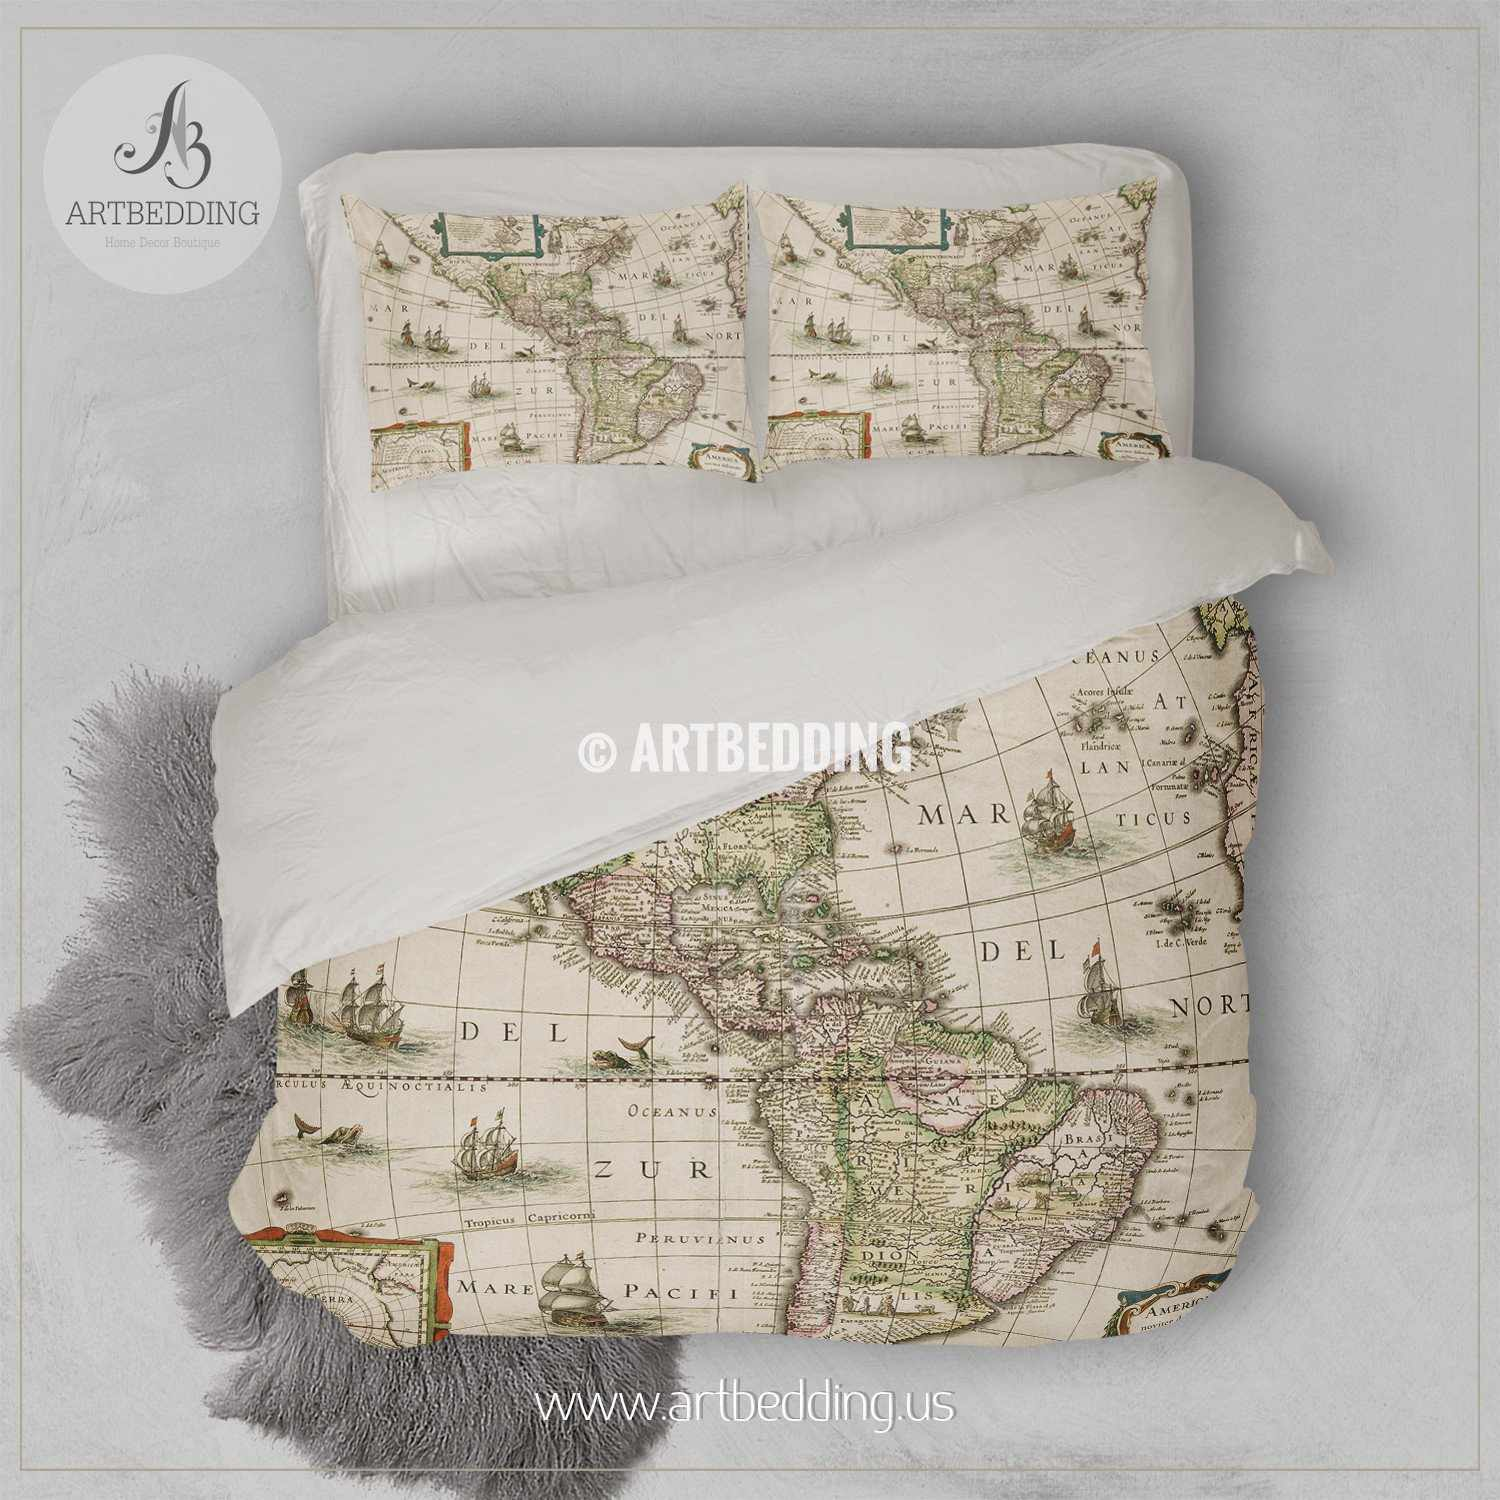 america old map bedding vintage old world map duvet cover set  -  north and south america old map bedding set vintage old world mapduvet cover set